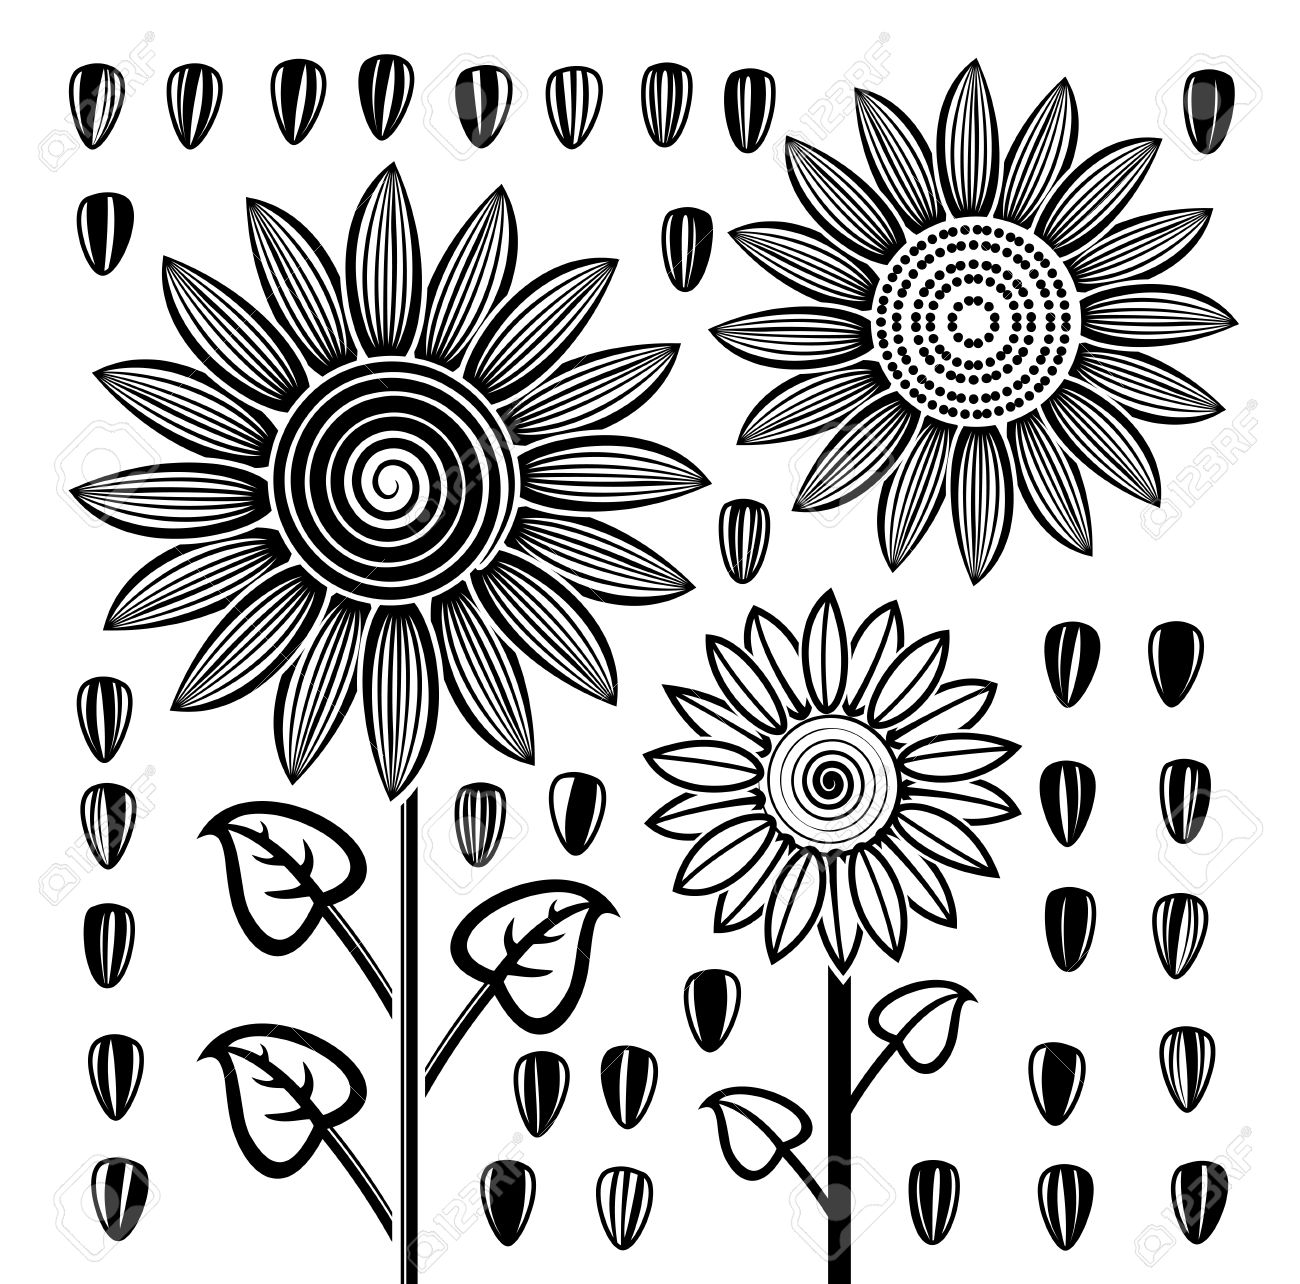 Black And White Drawings of Sunflowers Black And White Drawing of